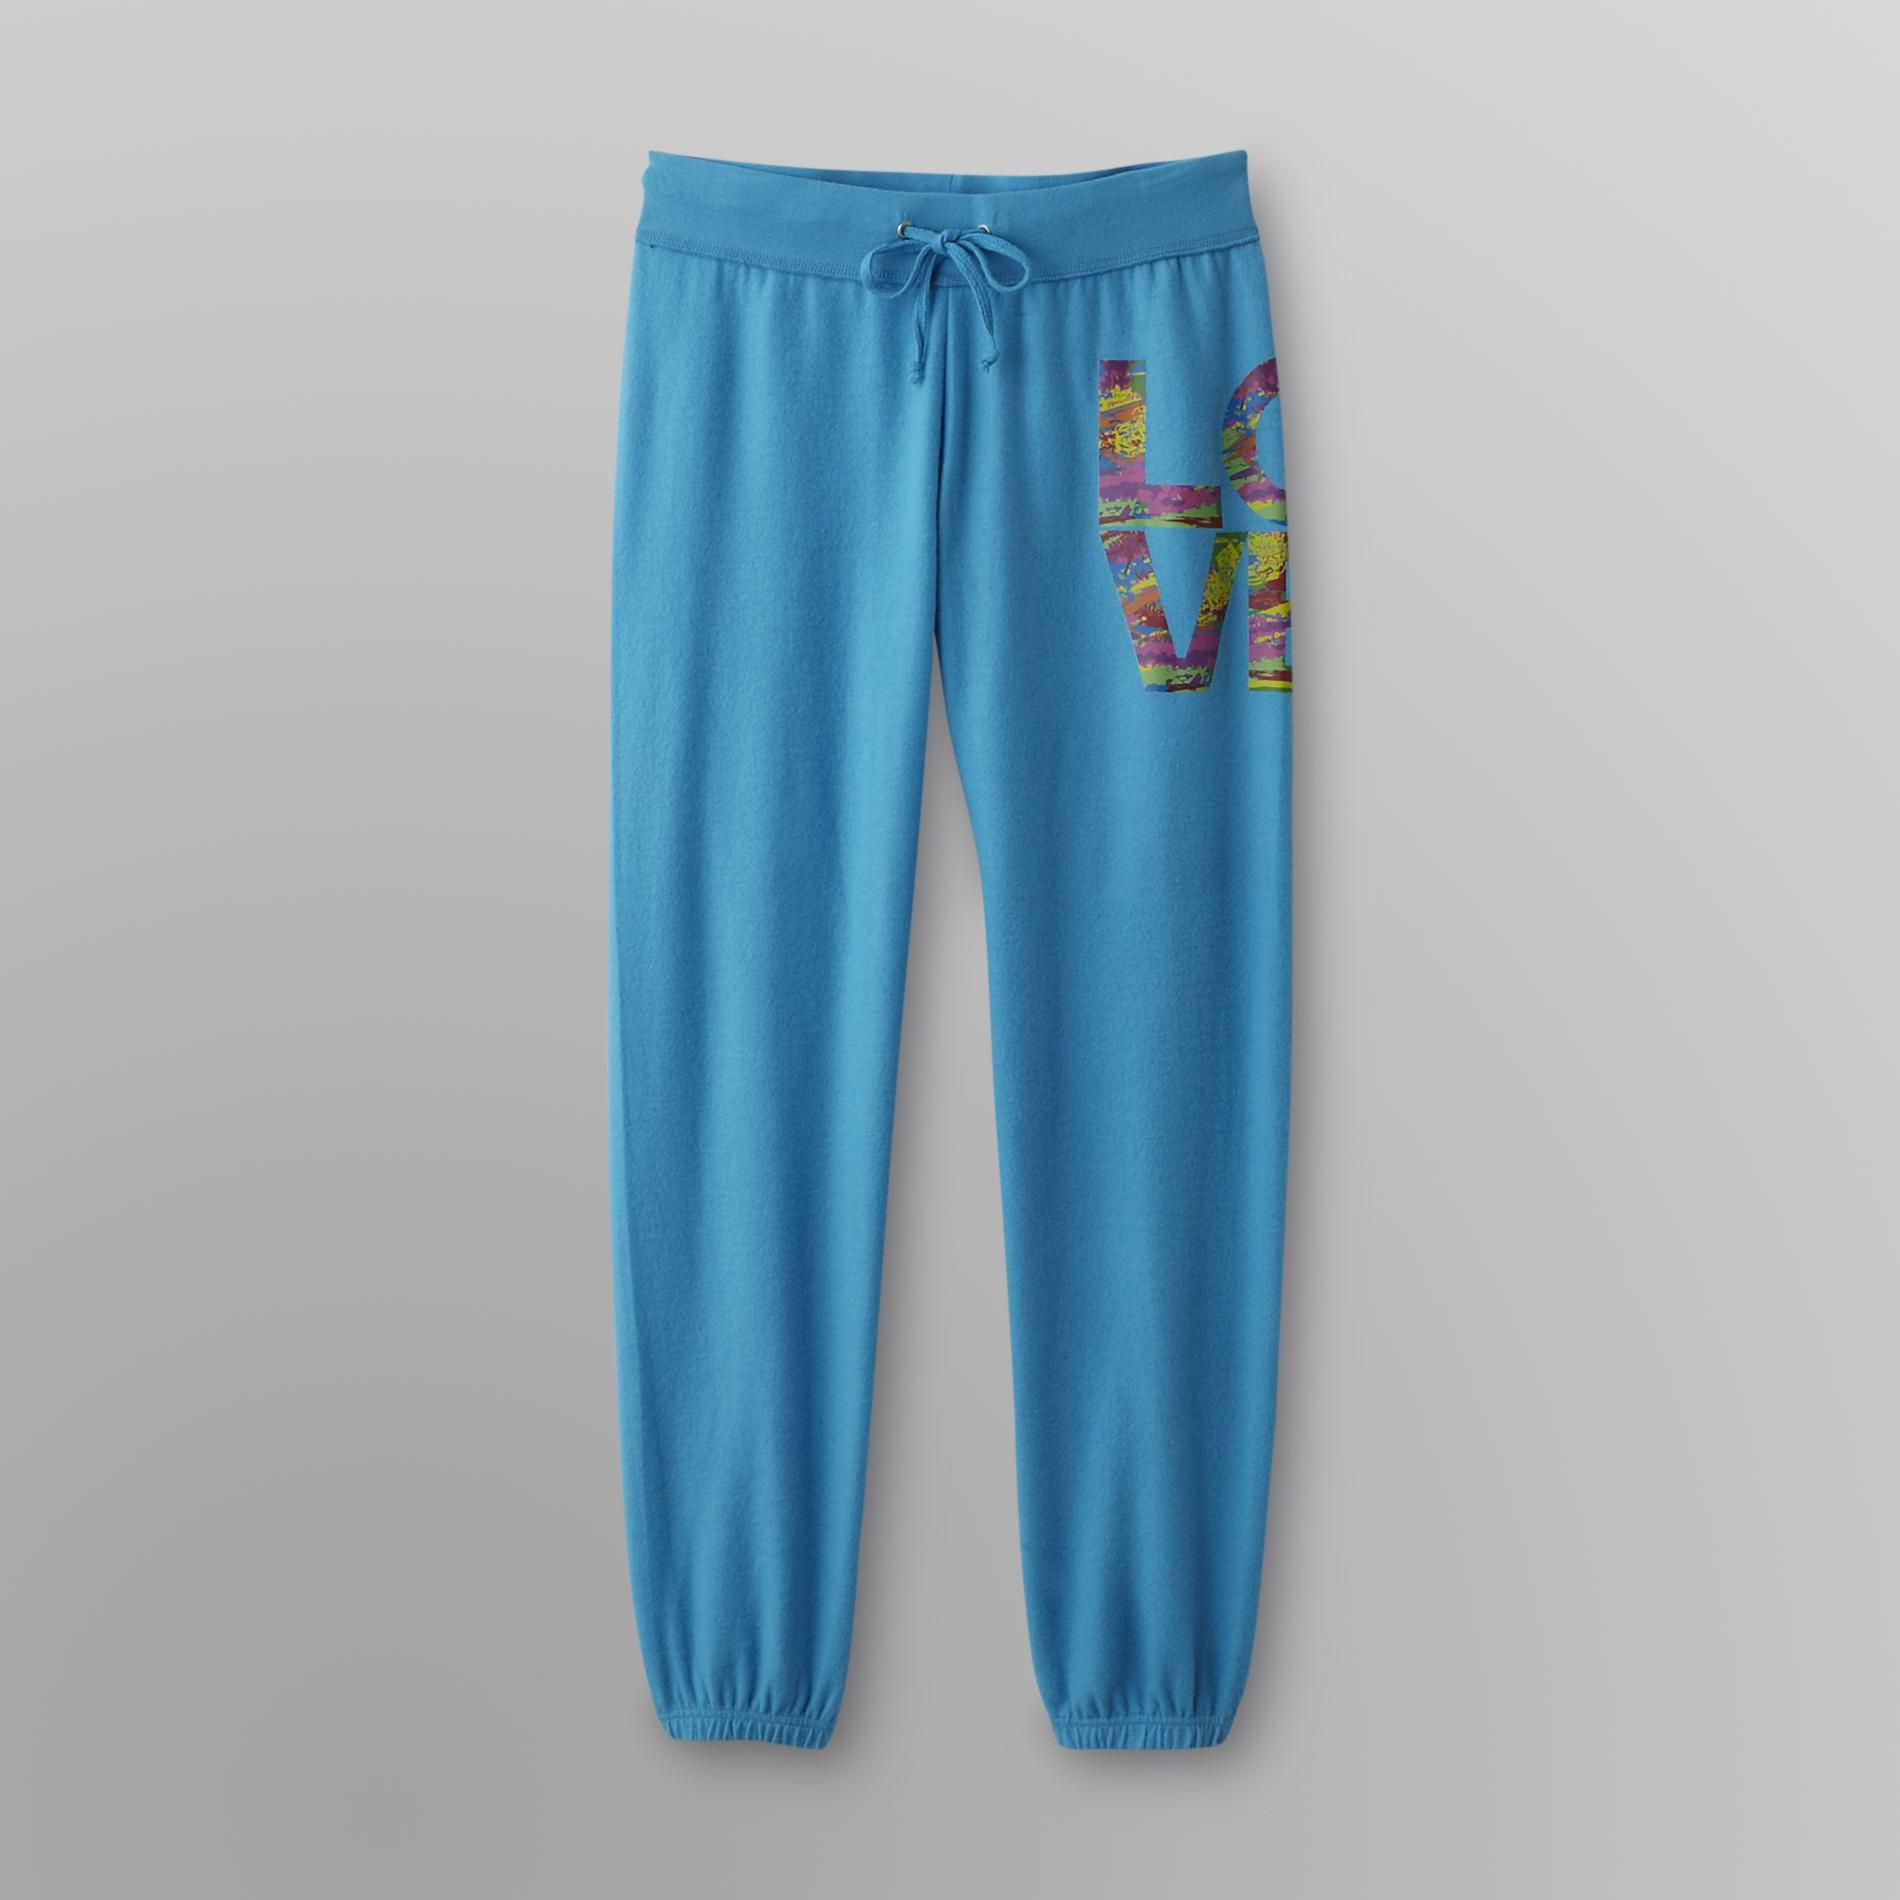 Joe by Joe Boxer Women's Graphic Sweatpants - Love at Sears.com